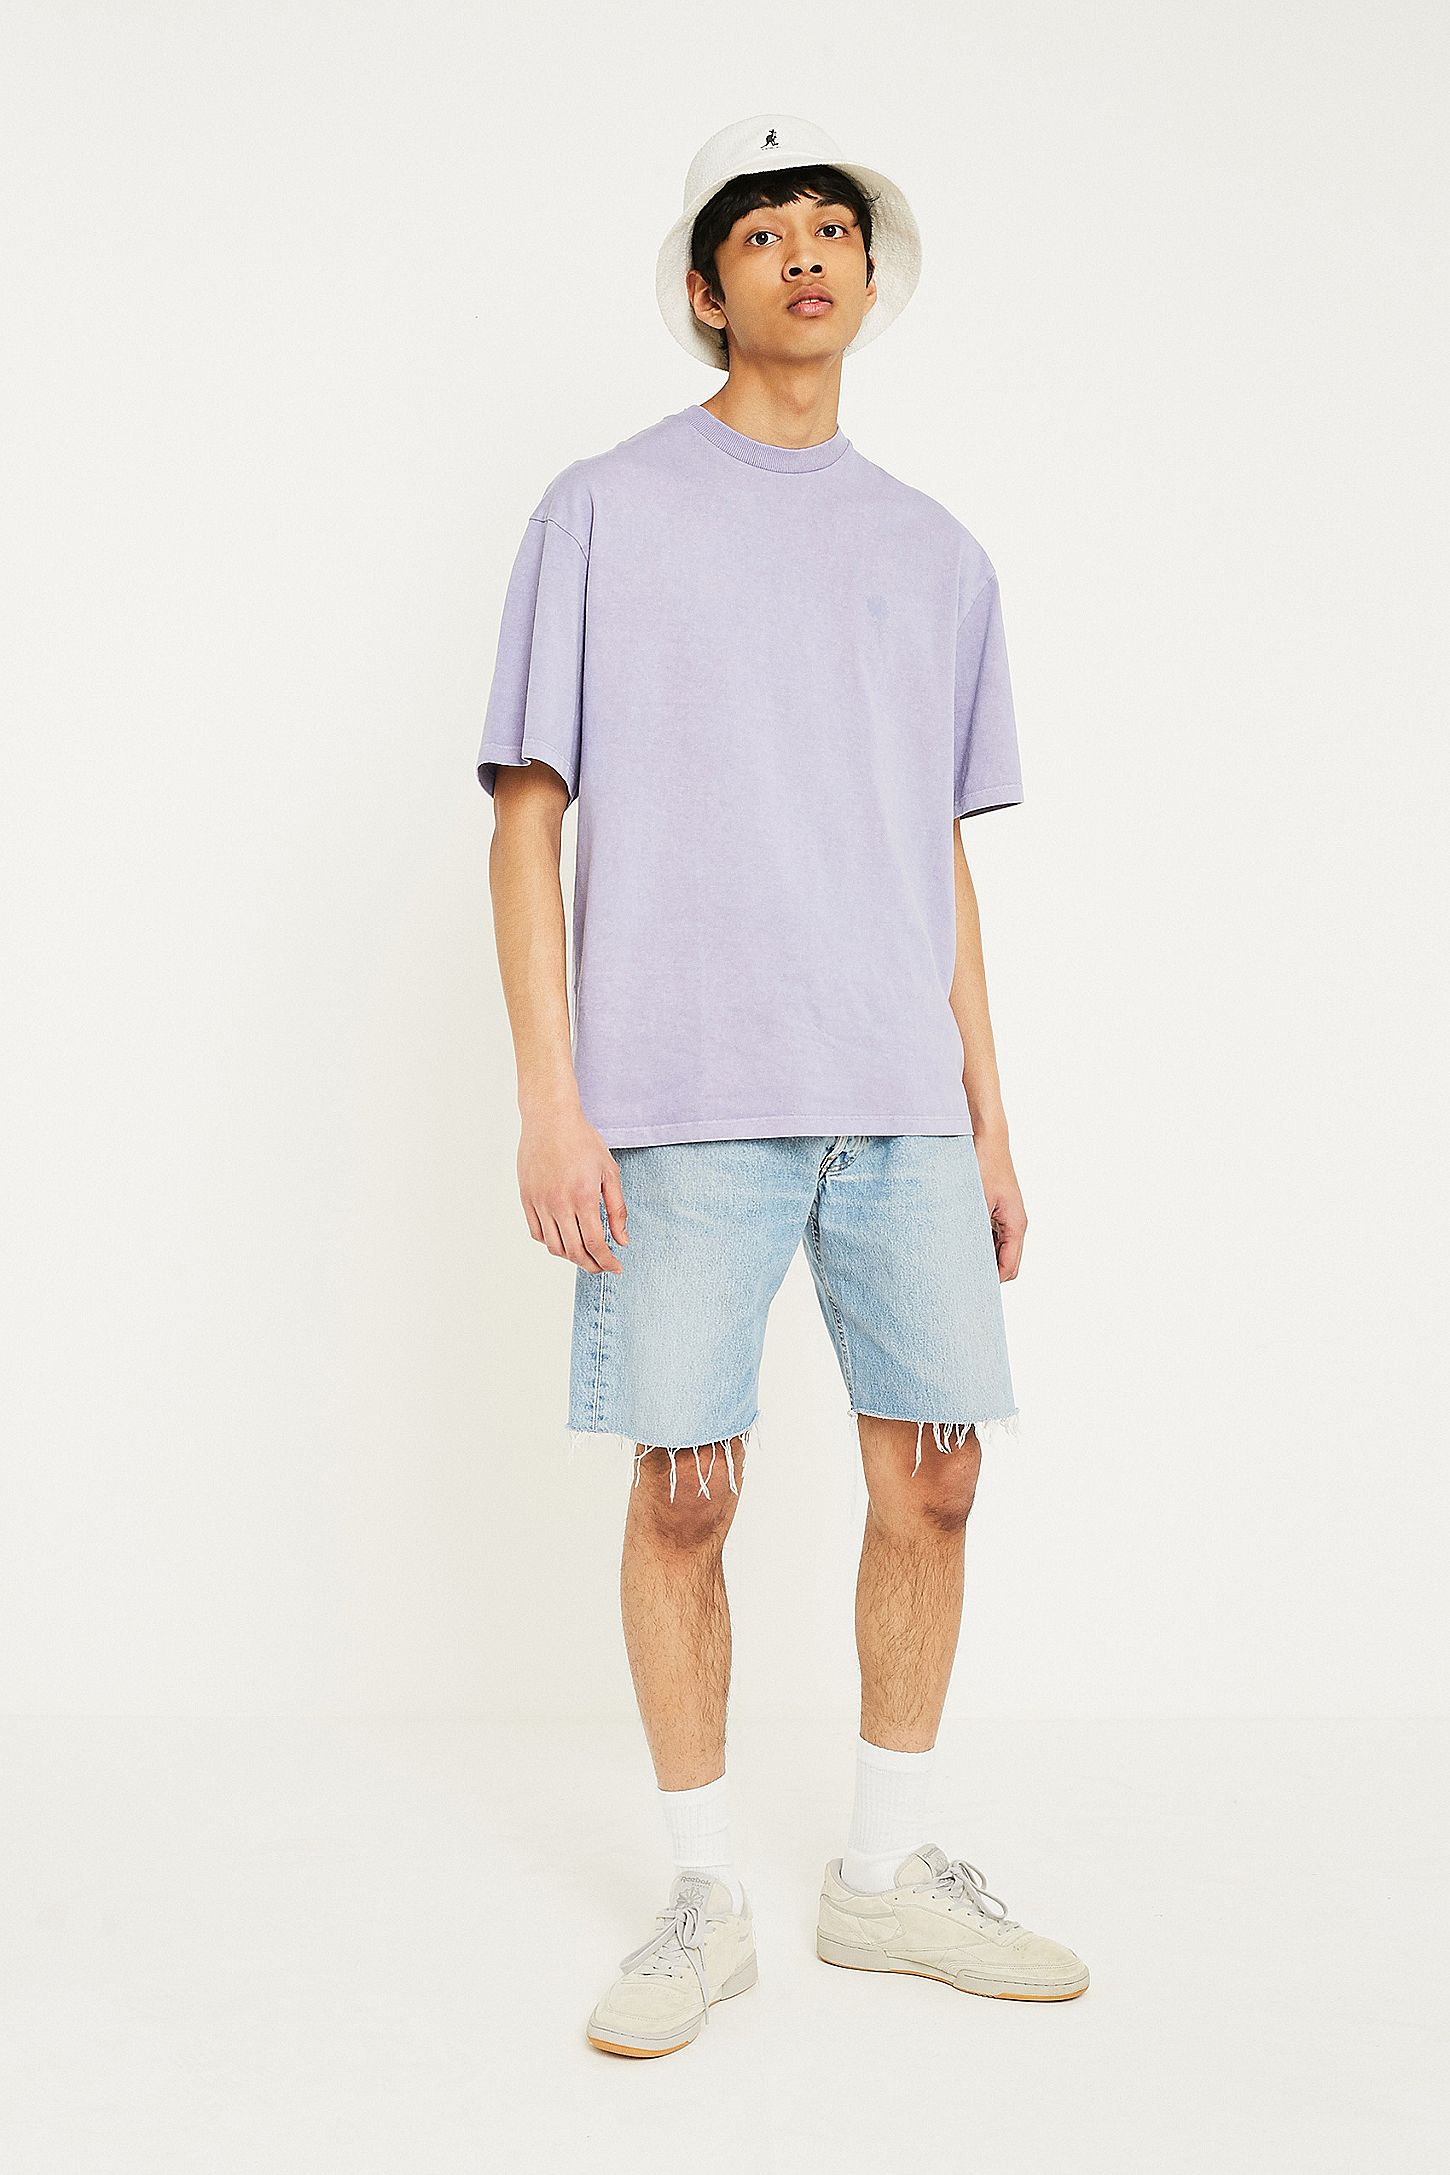 Uo Washed Lilac Oversized T Shirt Urban Outfitters Uk Grey Slide View 4